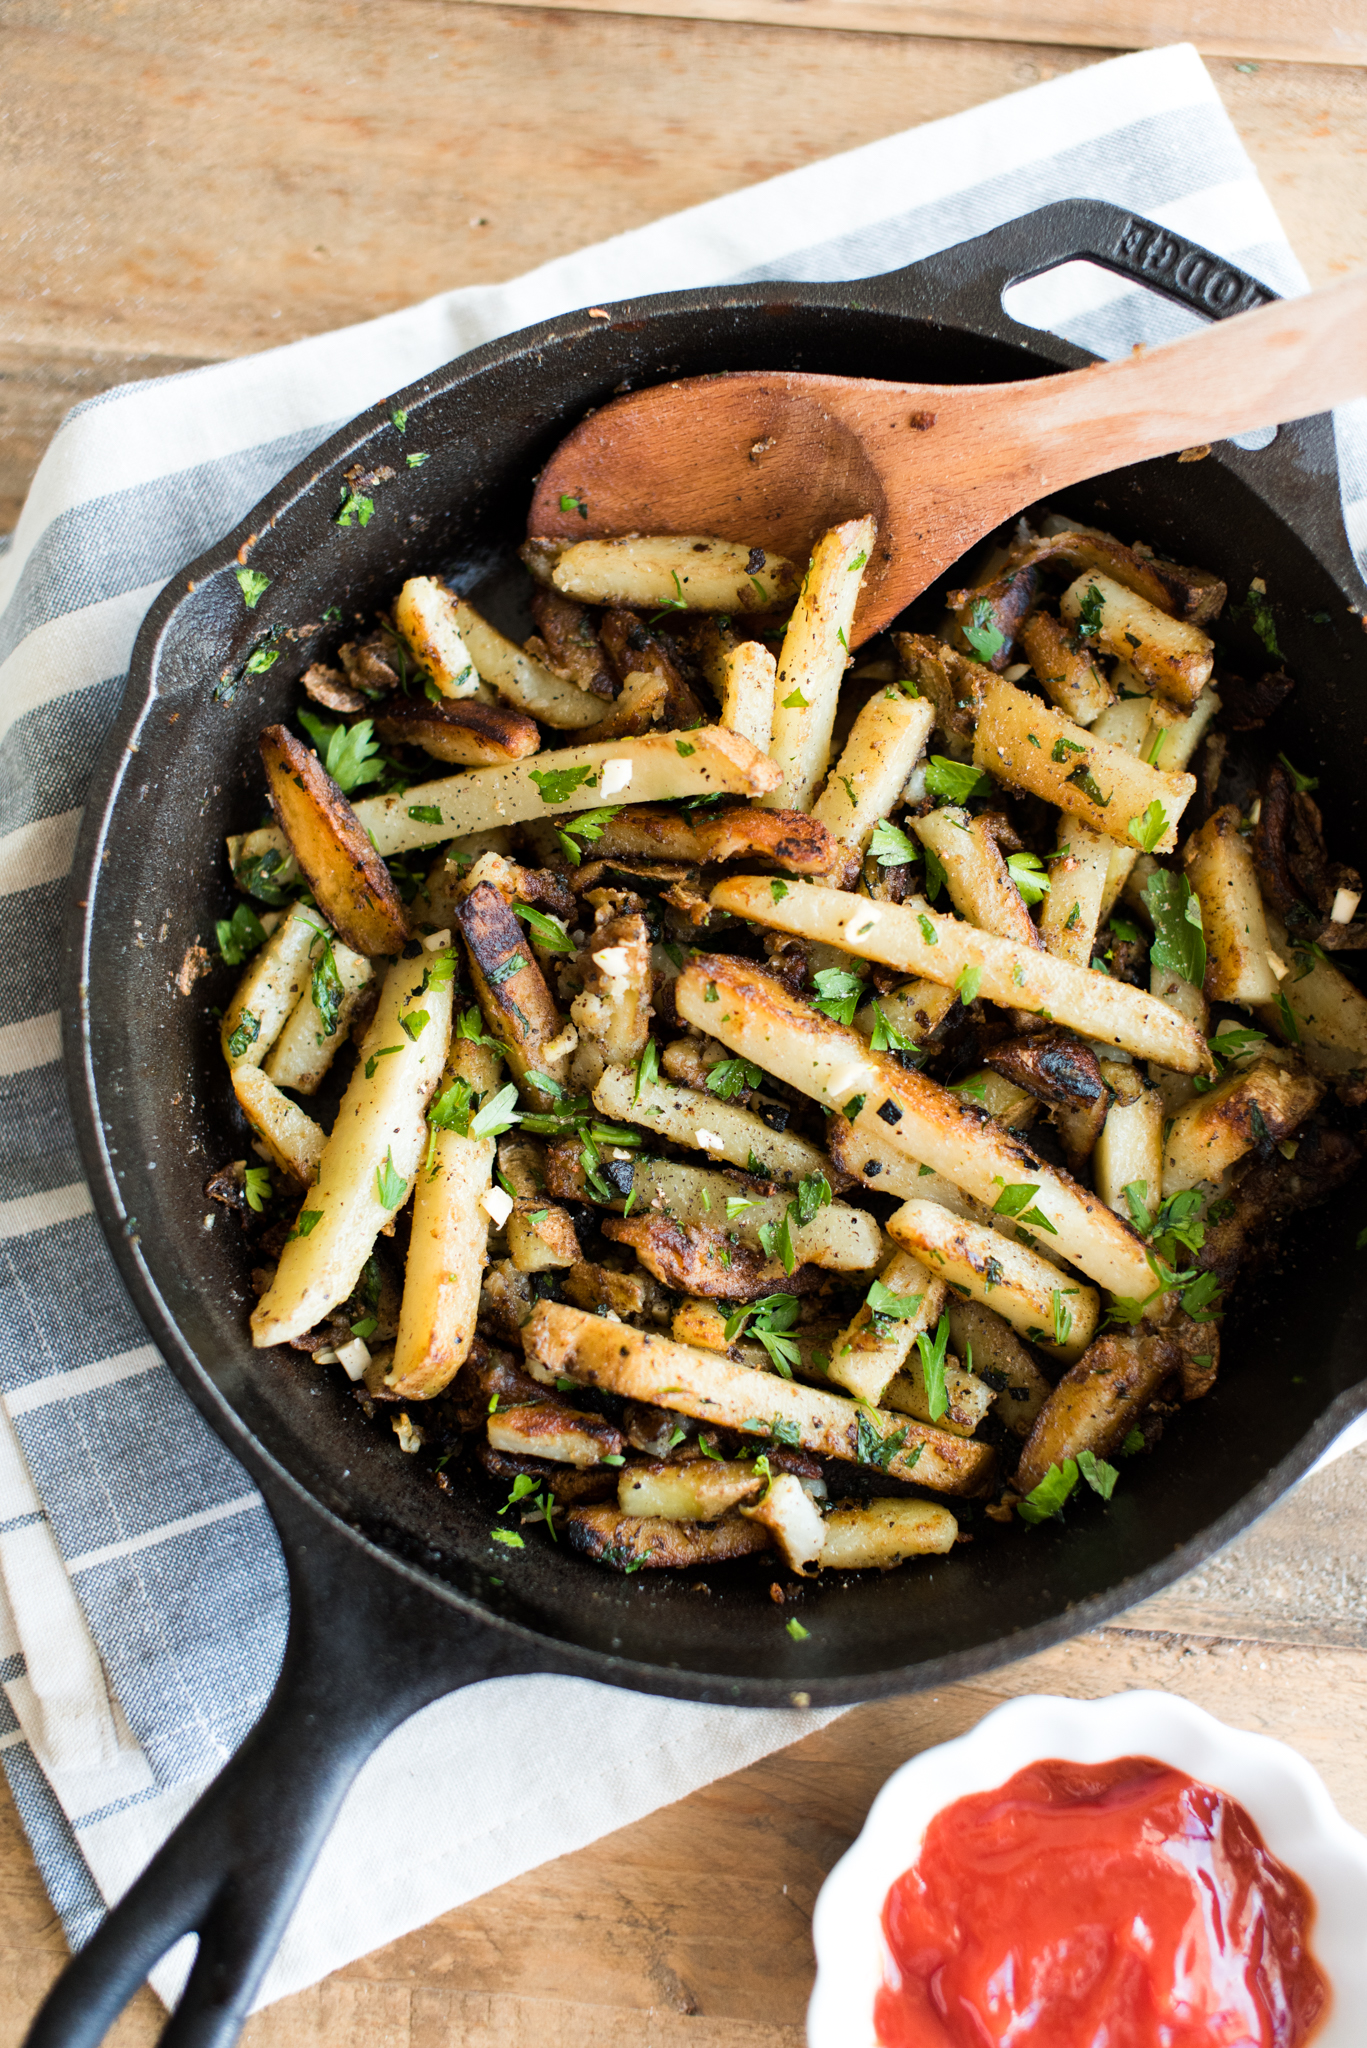 Garlic Butter Skillet Fries- the easiest, most delicious homemade fries! Crispy on the outside and buttery on the inside.